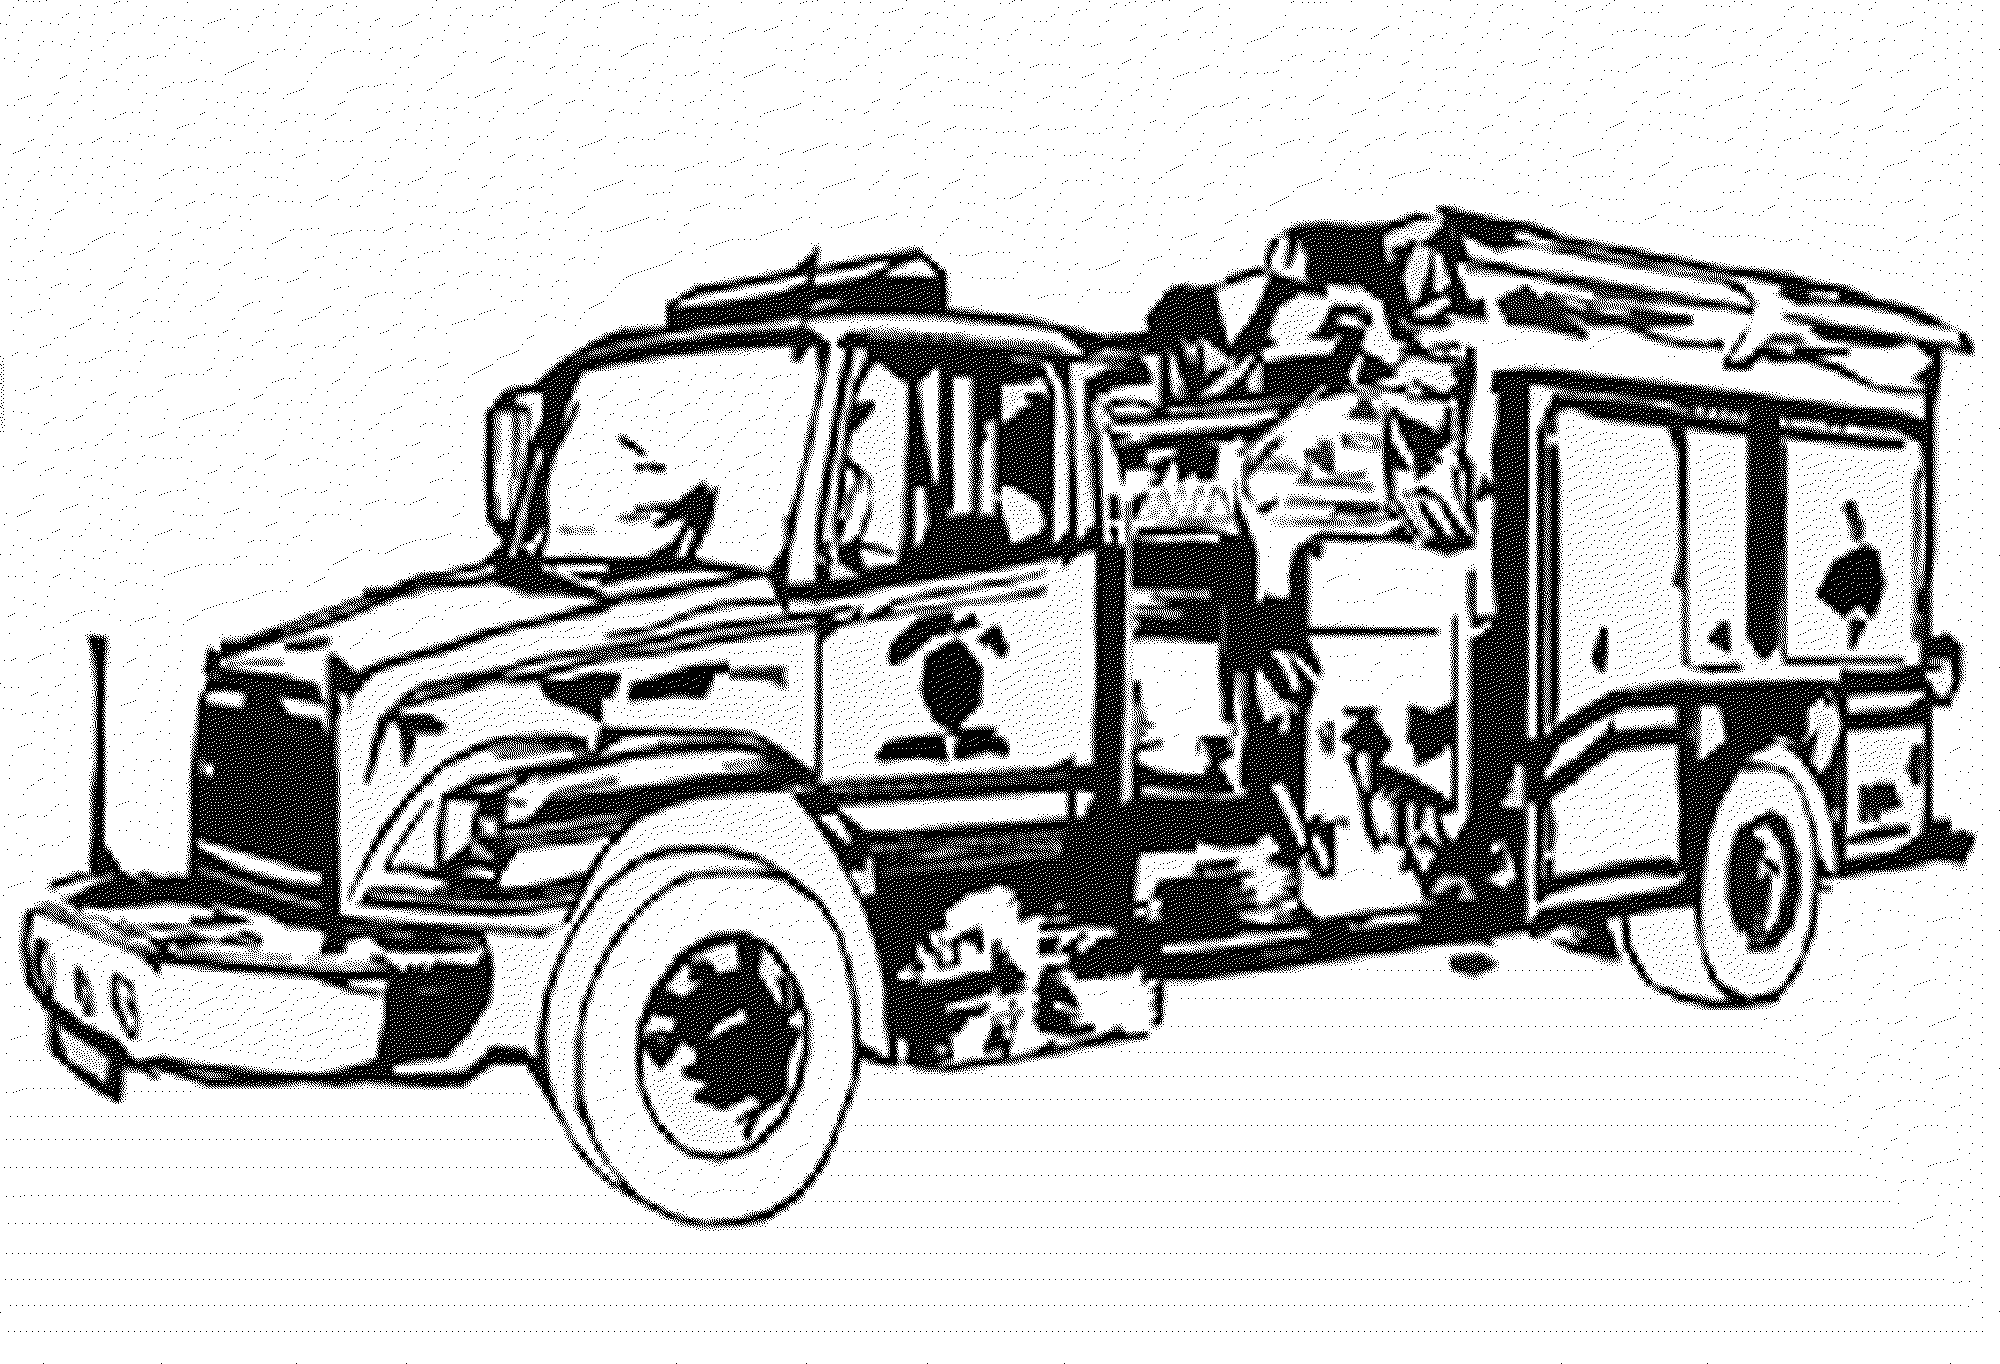 fire truck pictures coloring pages free printable fire truck coloring pages for kids pictures pages coloring fire truck